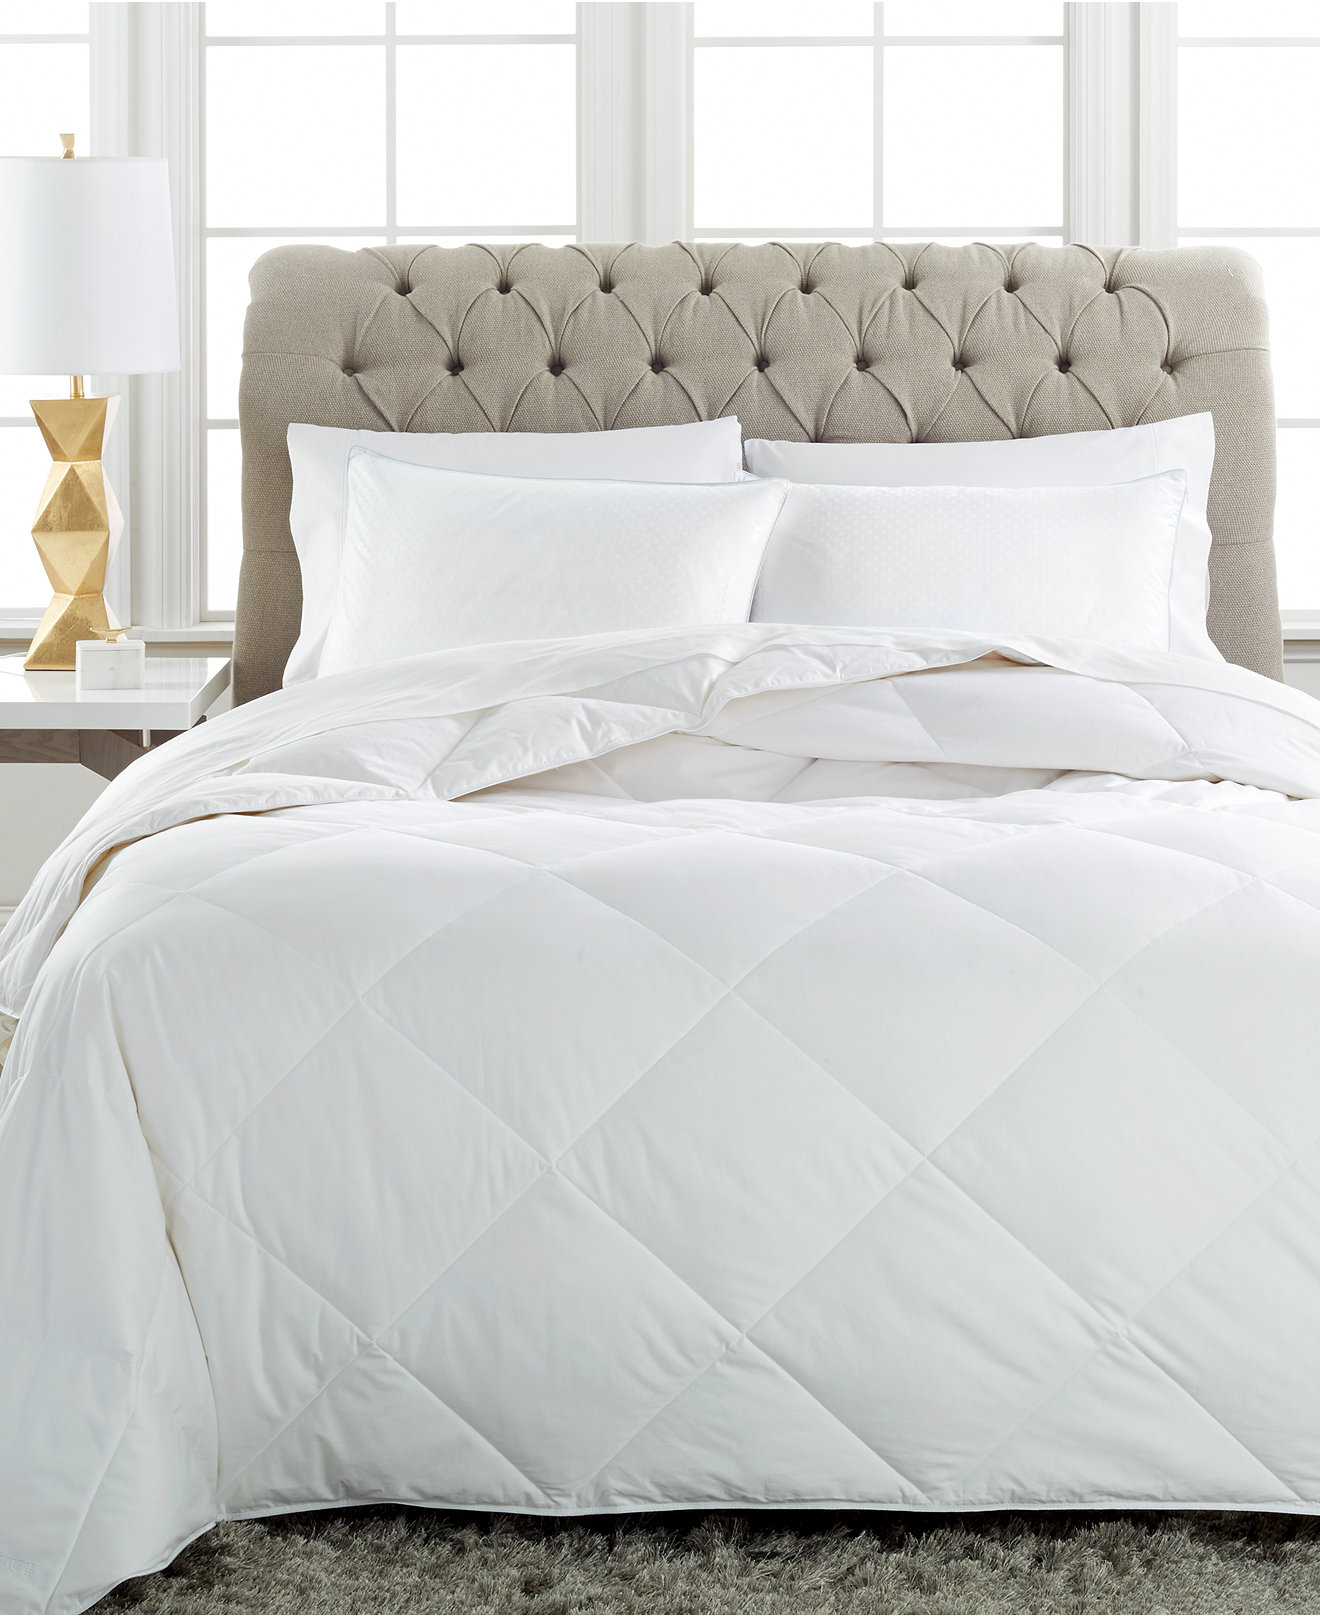 attractive with down incredible comforter pacific design for bedroom classic coast